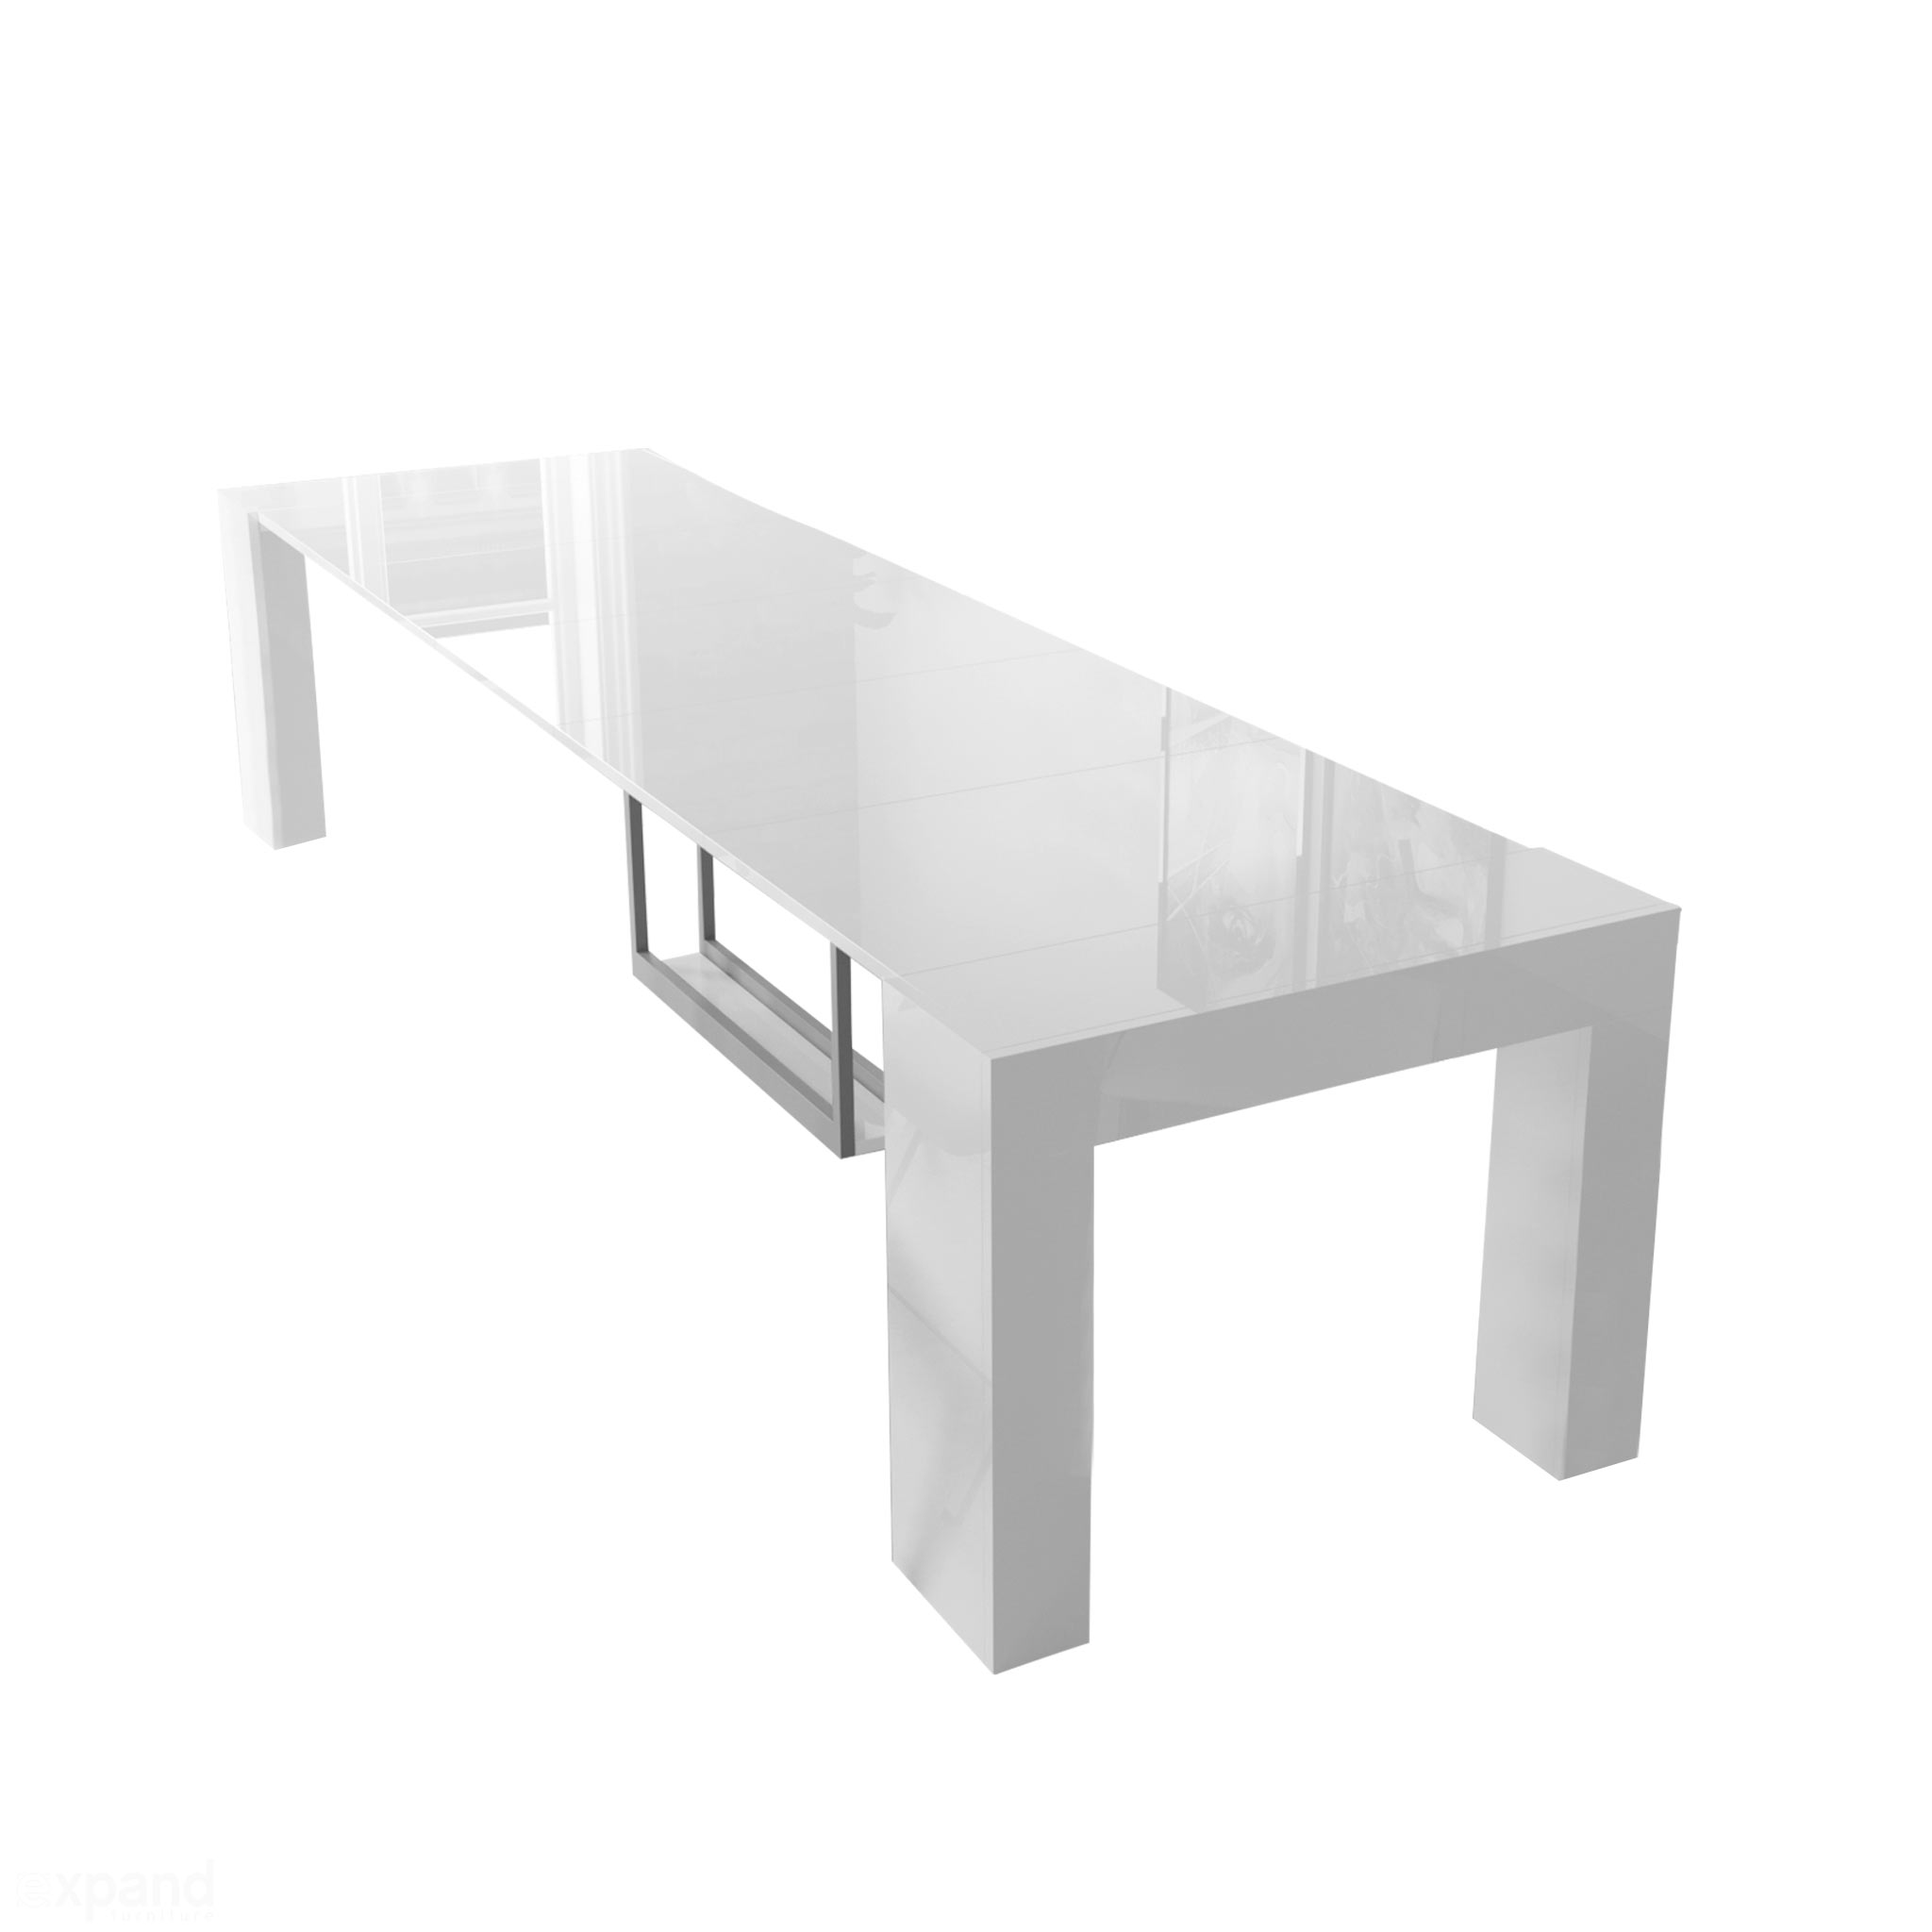 Astonishing Cubist Table With Built In Extension Storage Bralicious Painted Fabric Chair Ideas Braliciousco